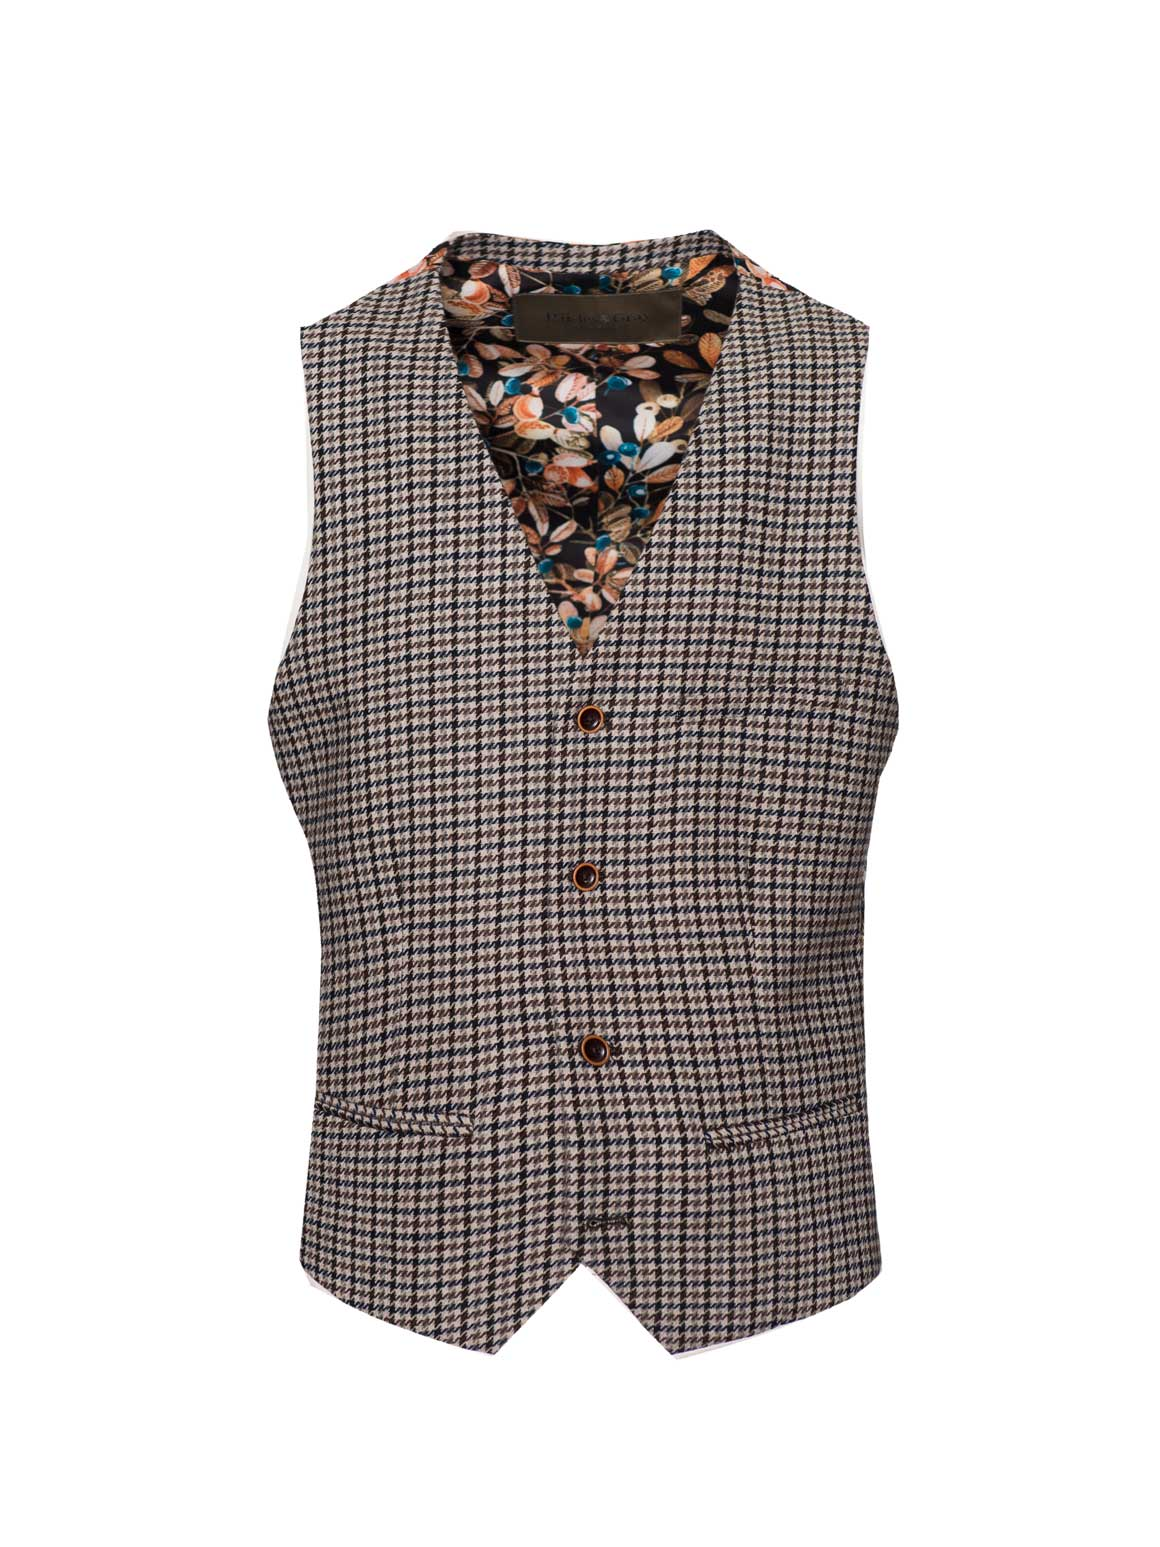 Eaton Vest - Slim - Black & Beige Small Check